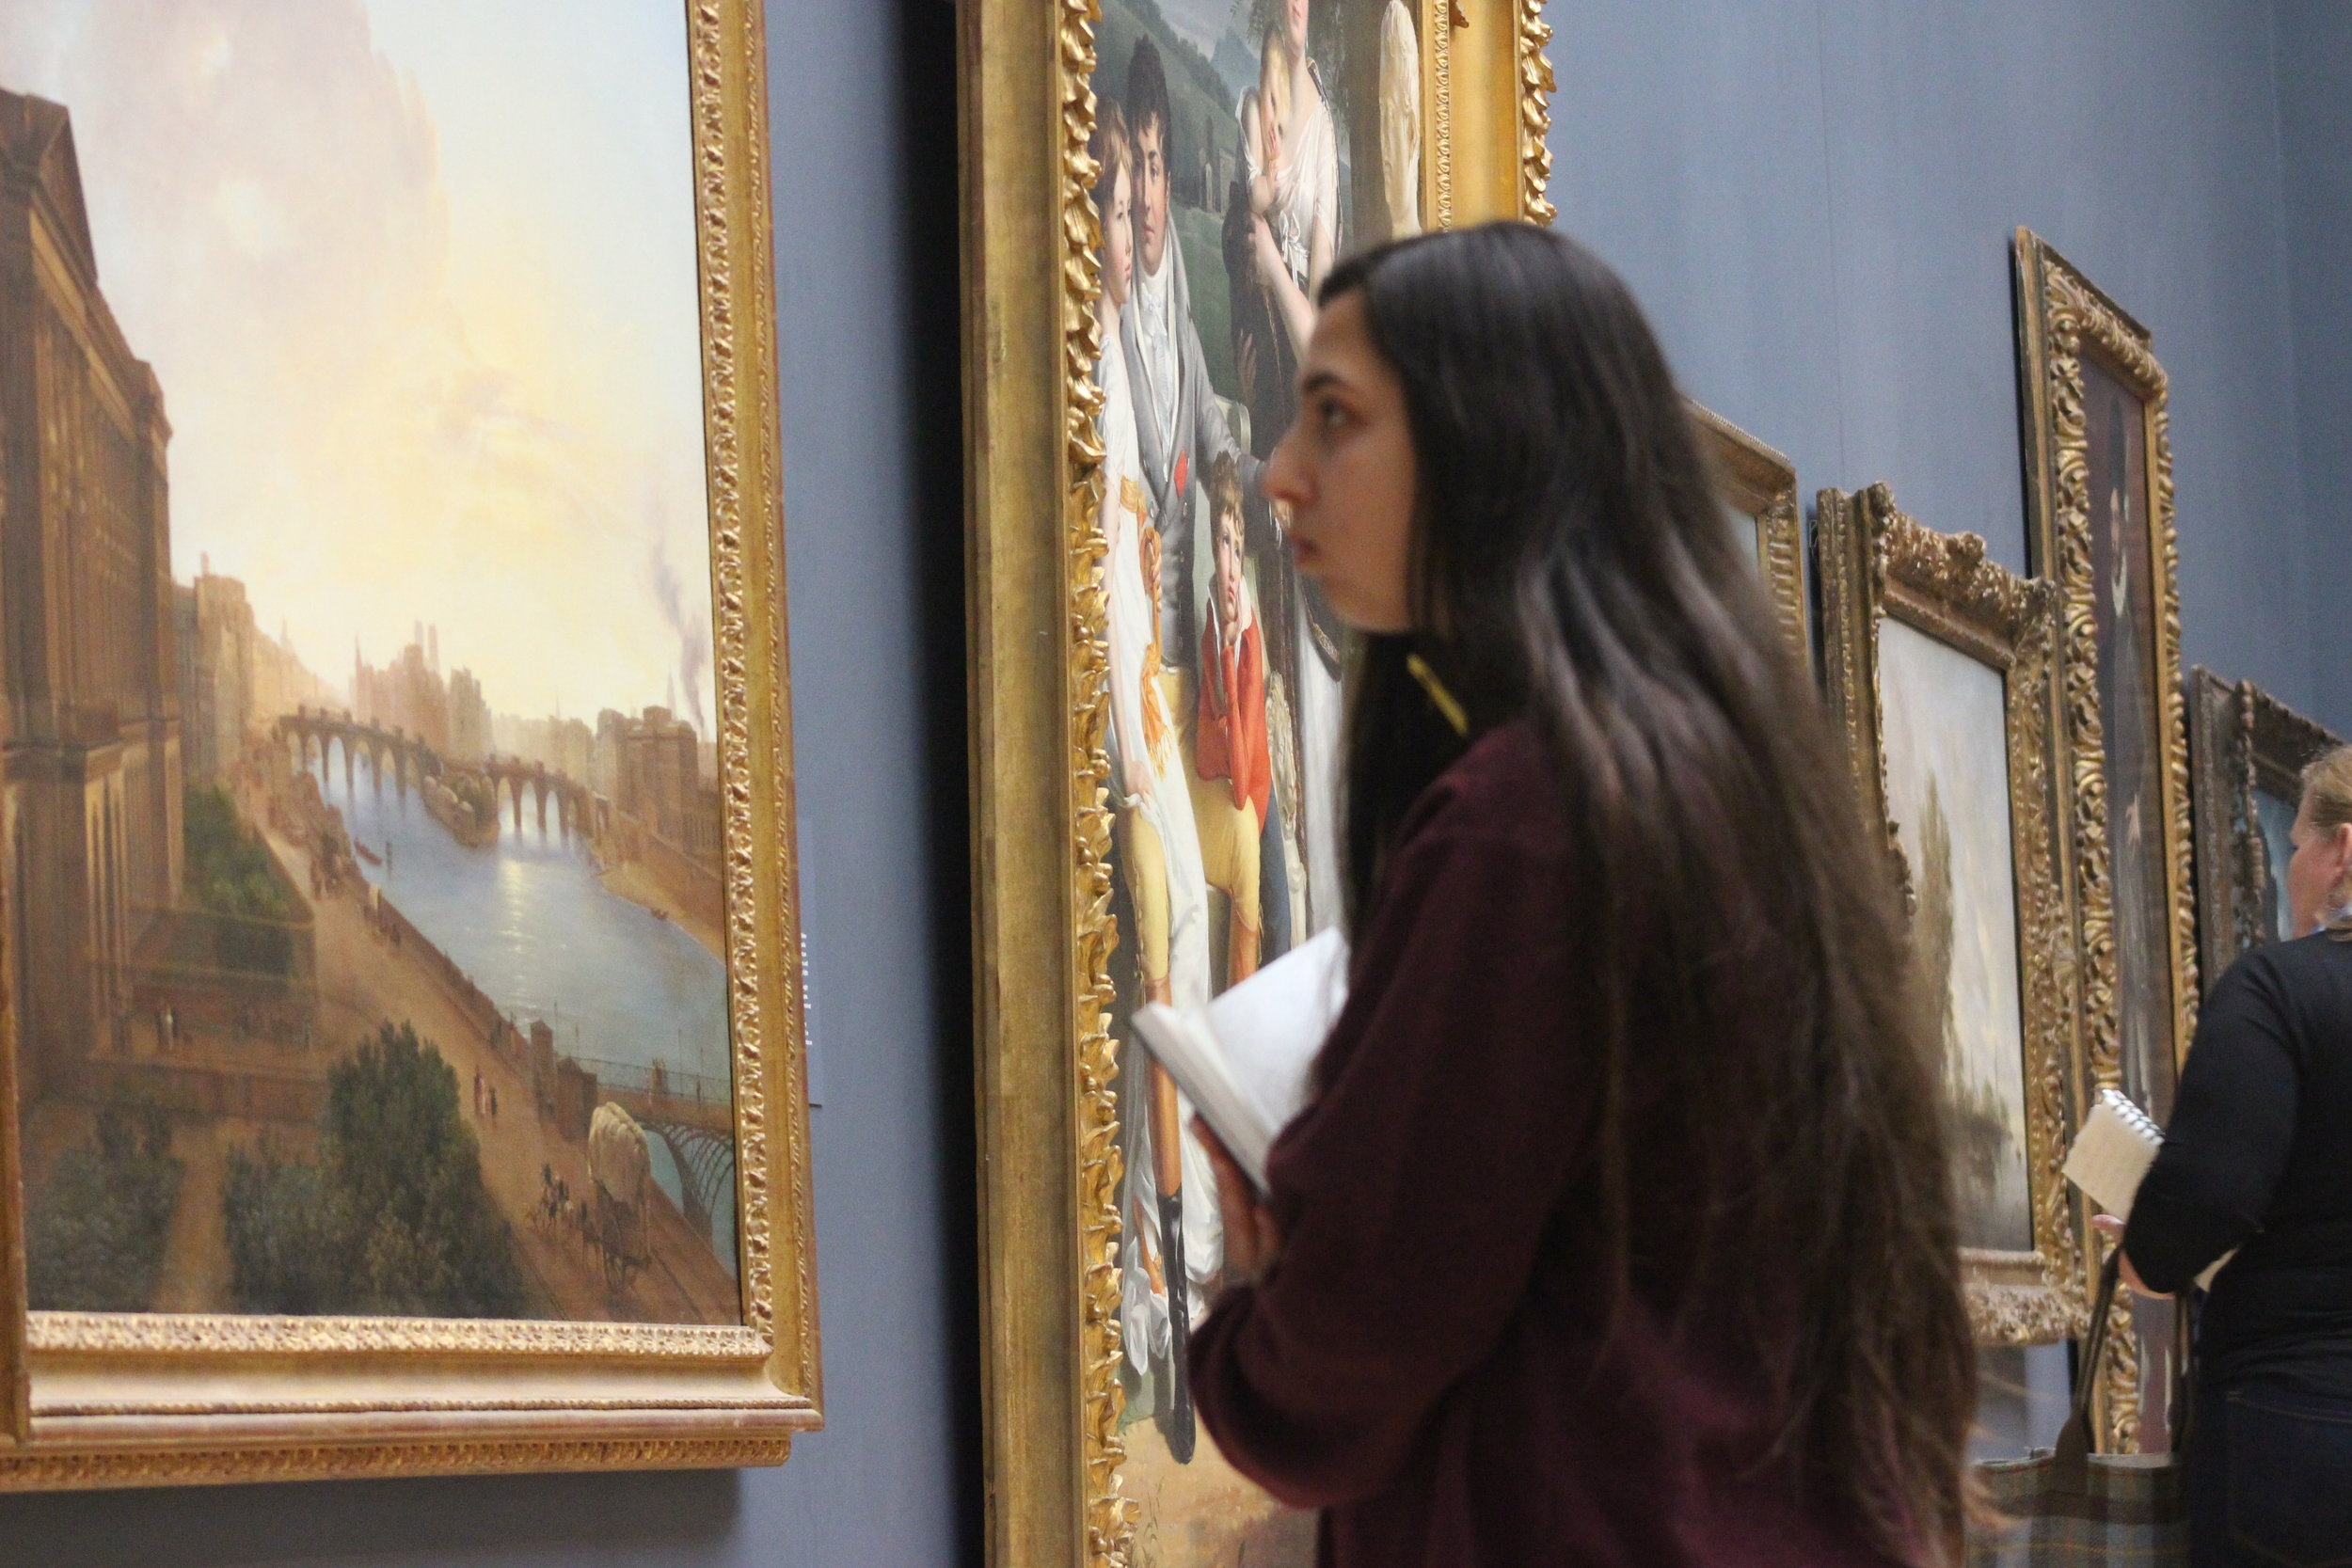 A student in deep concentration while observing a painting